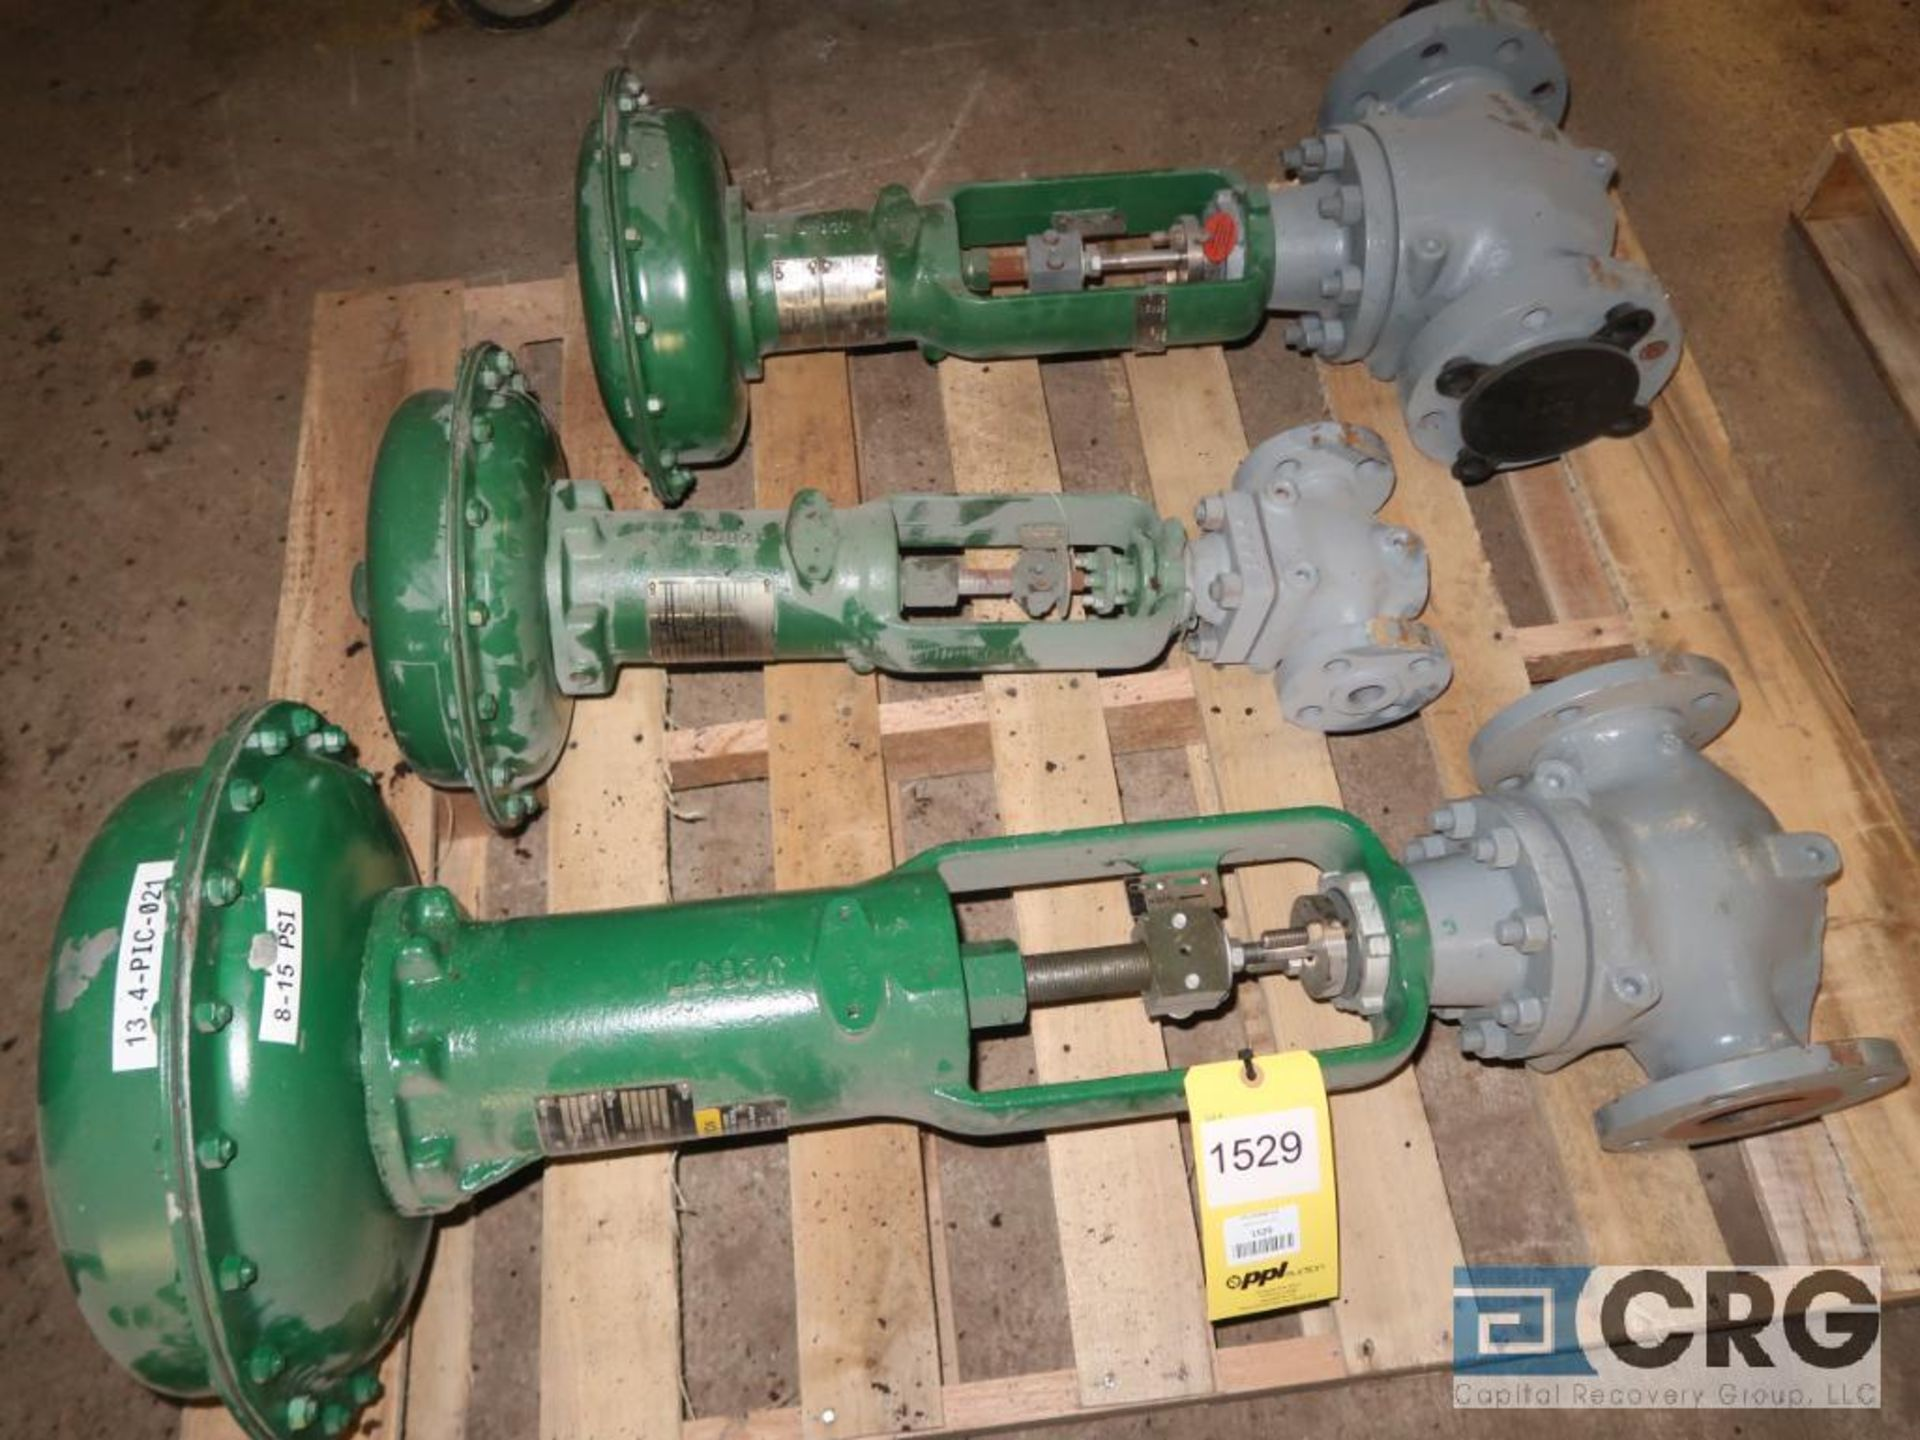 Lot of (3) assorted Fisher valves including (1) 3 7/16 in., (1) 2 7/8 in., and (1) 1 in. (496 Dock